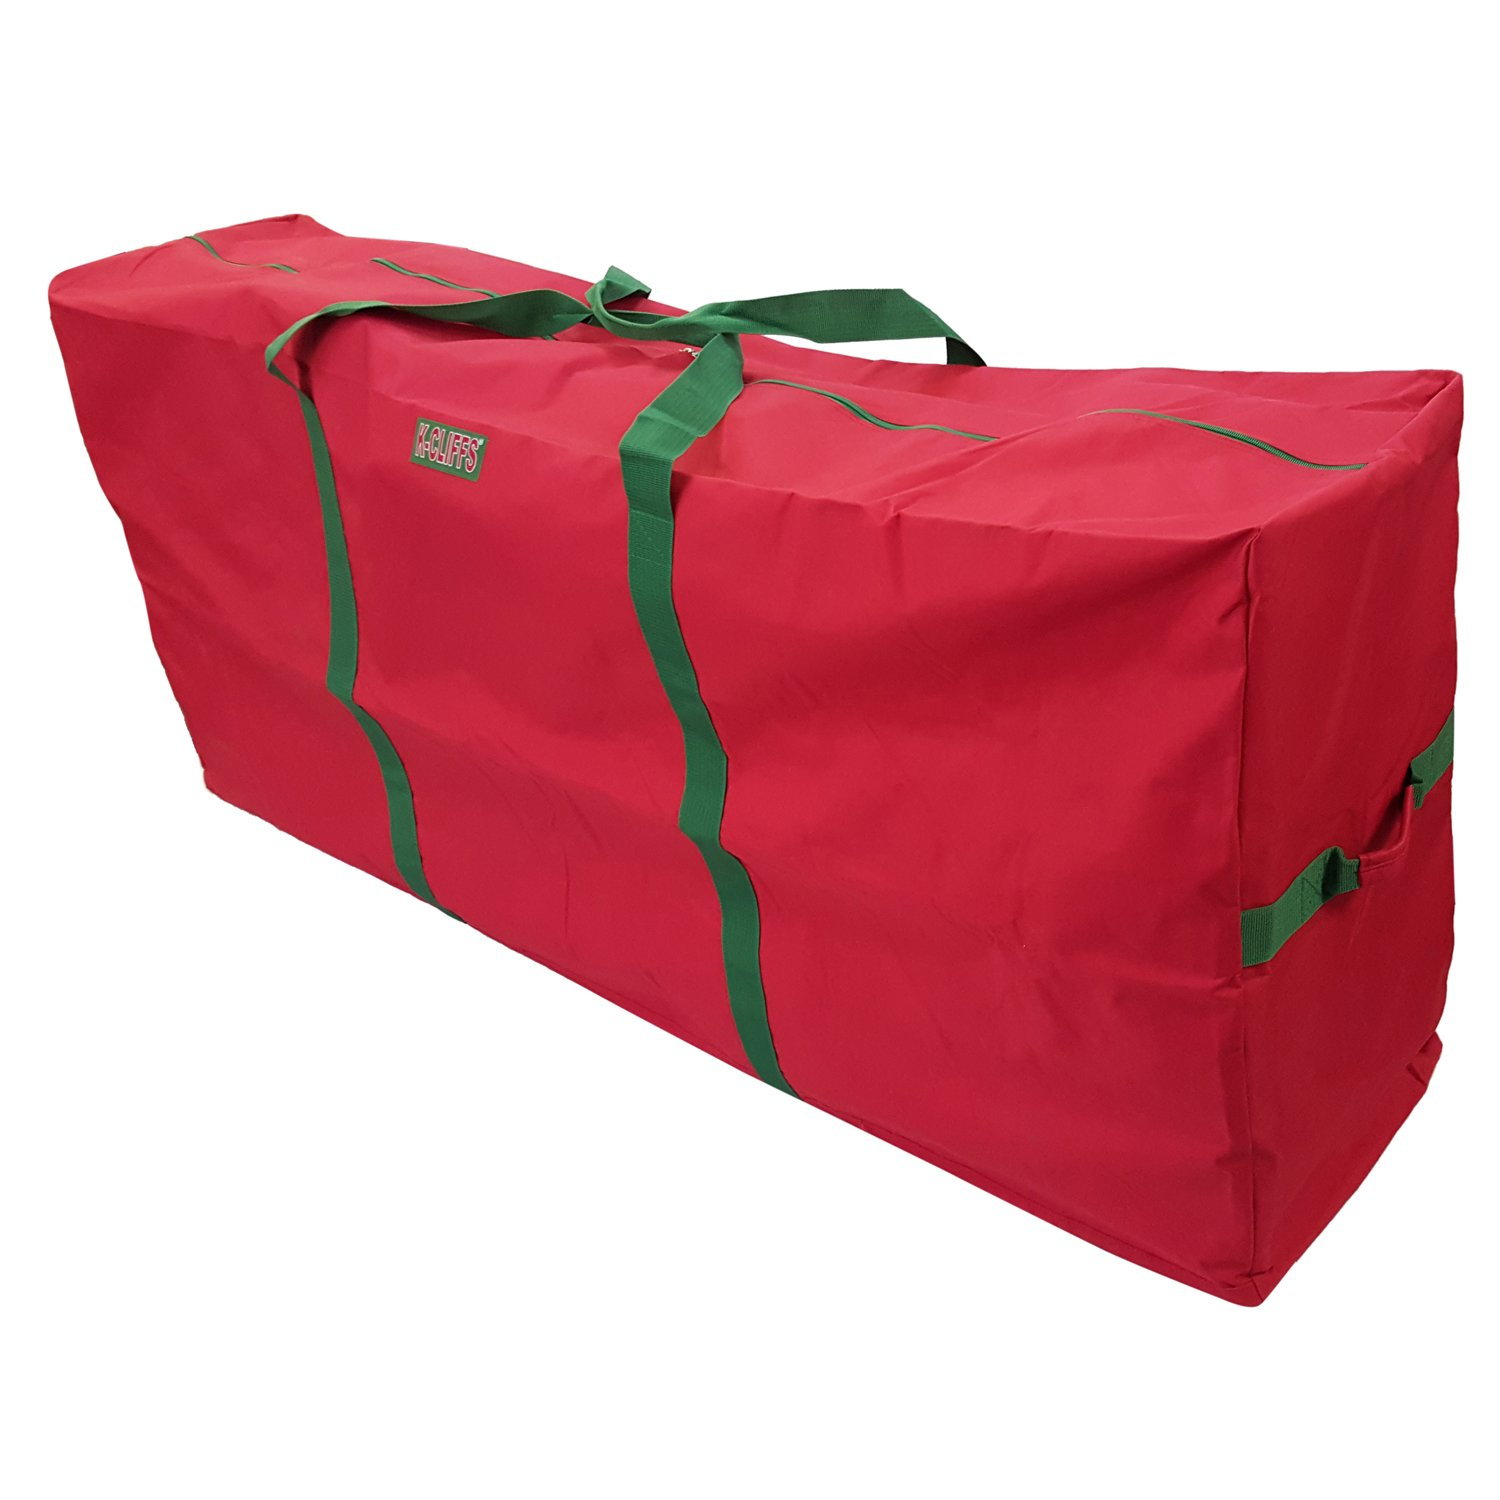 amazoncom k cliffs artificial christmas tree storage bag fits up to 9 ft trees 65 x 30 x 15 home kitchen - Christmas Tree Bags Amazon